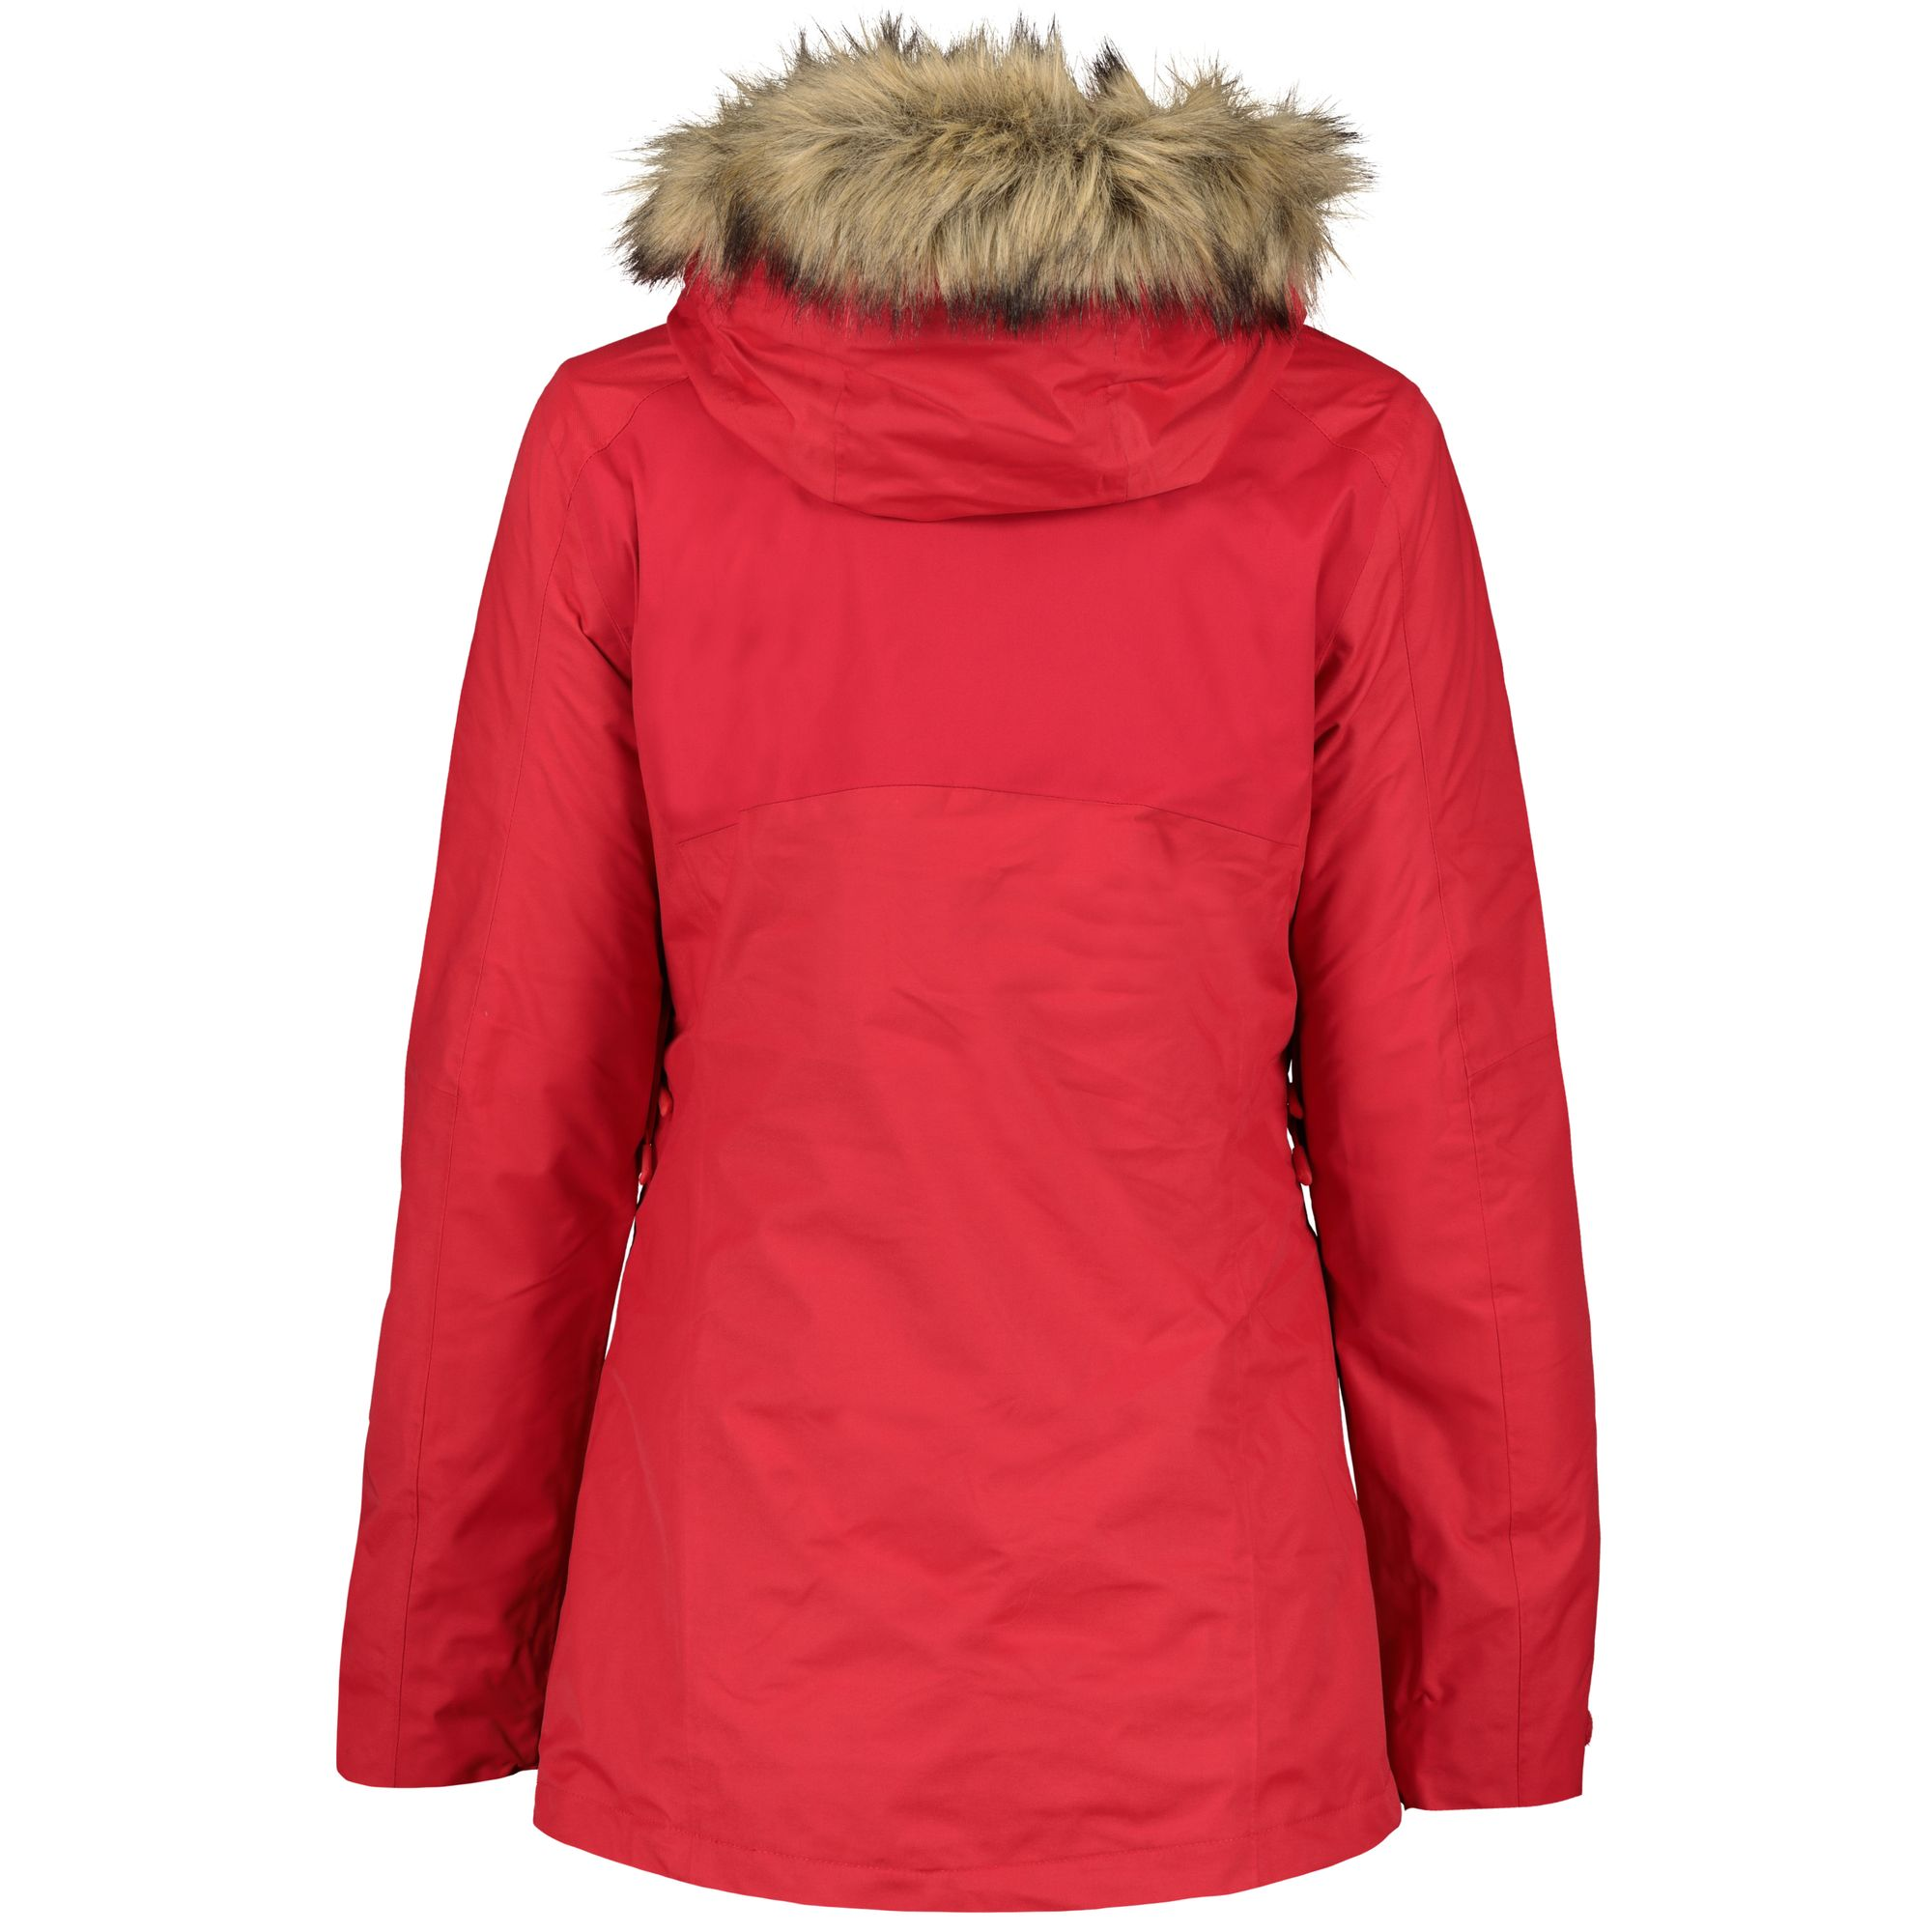 newest b9b15 bd943 Jack Wolfskin Damen Doppeljacke Arctic Ocean 3-in-1 true red